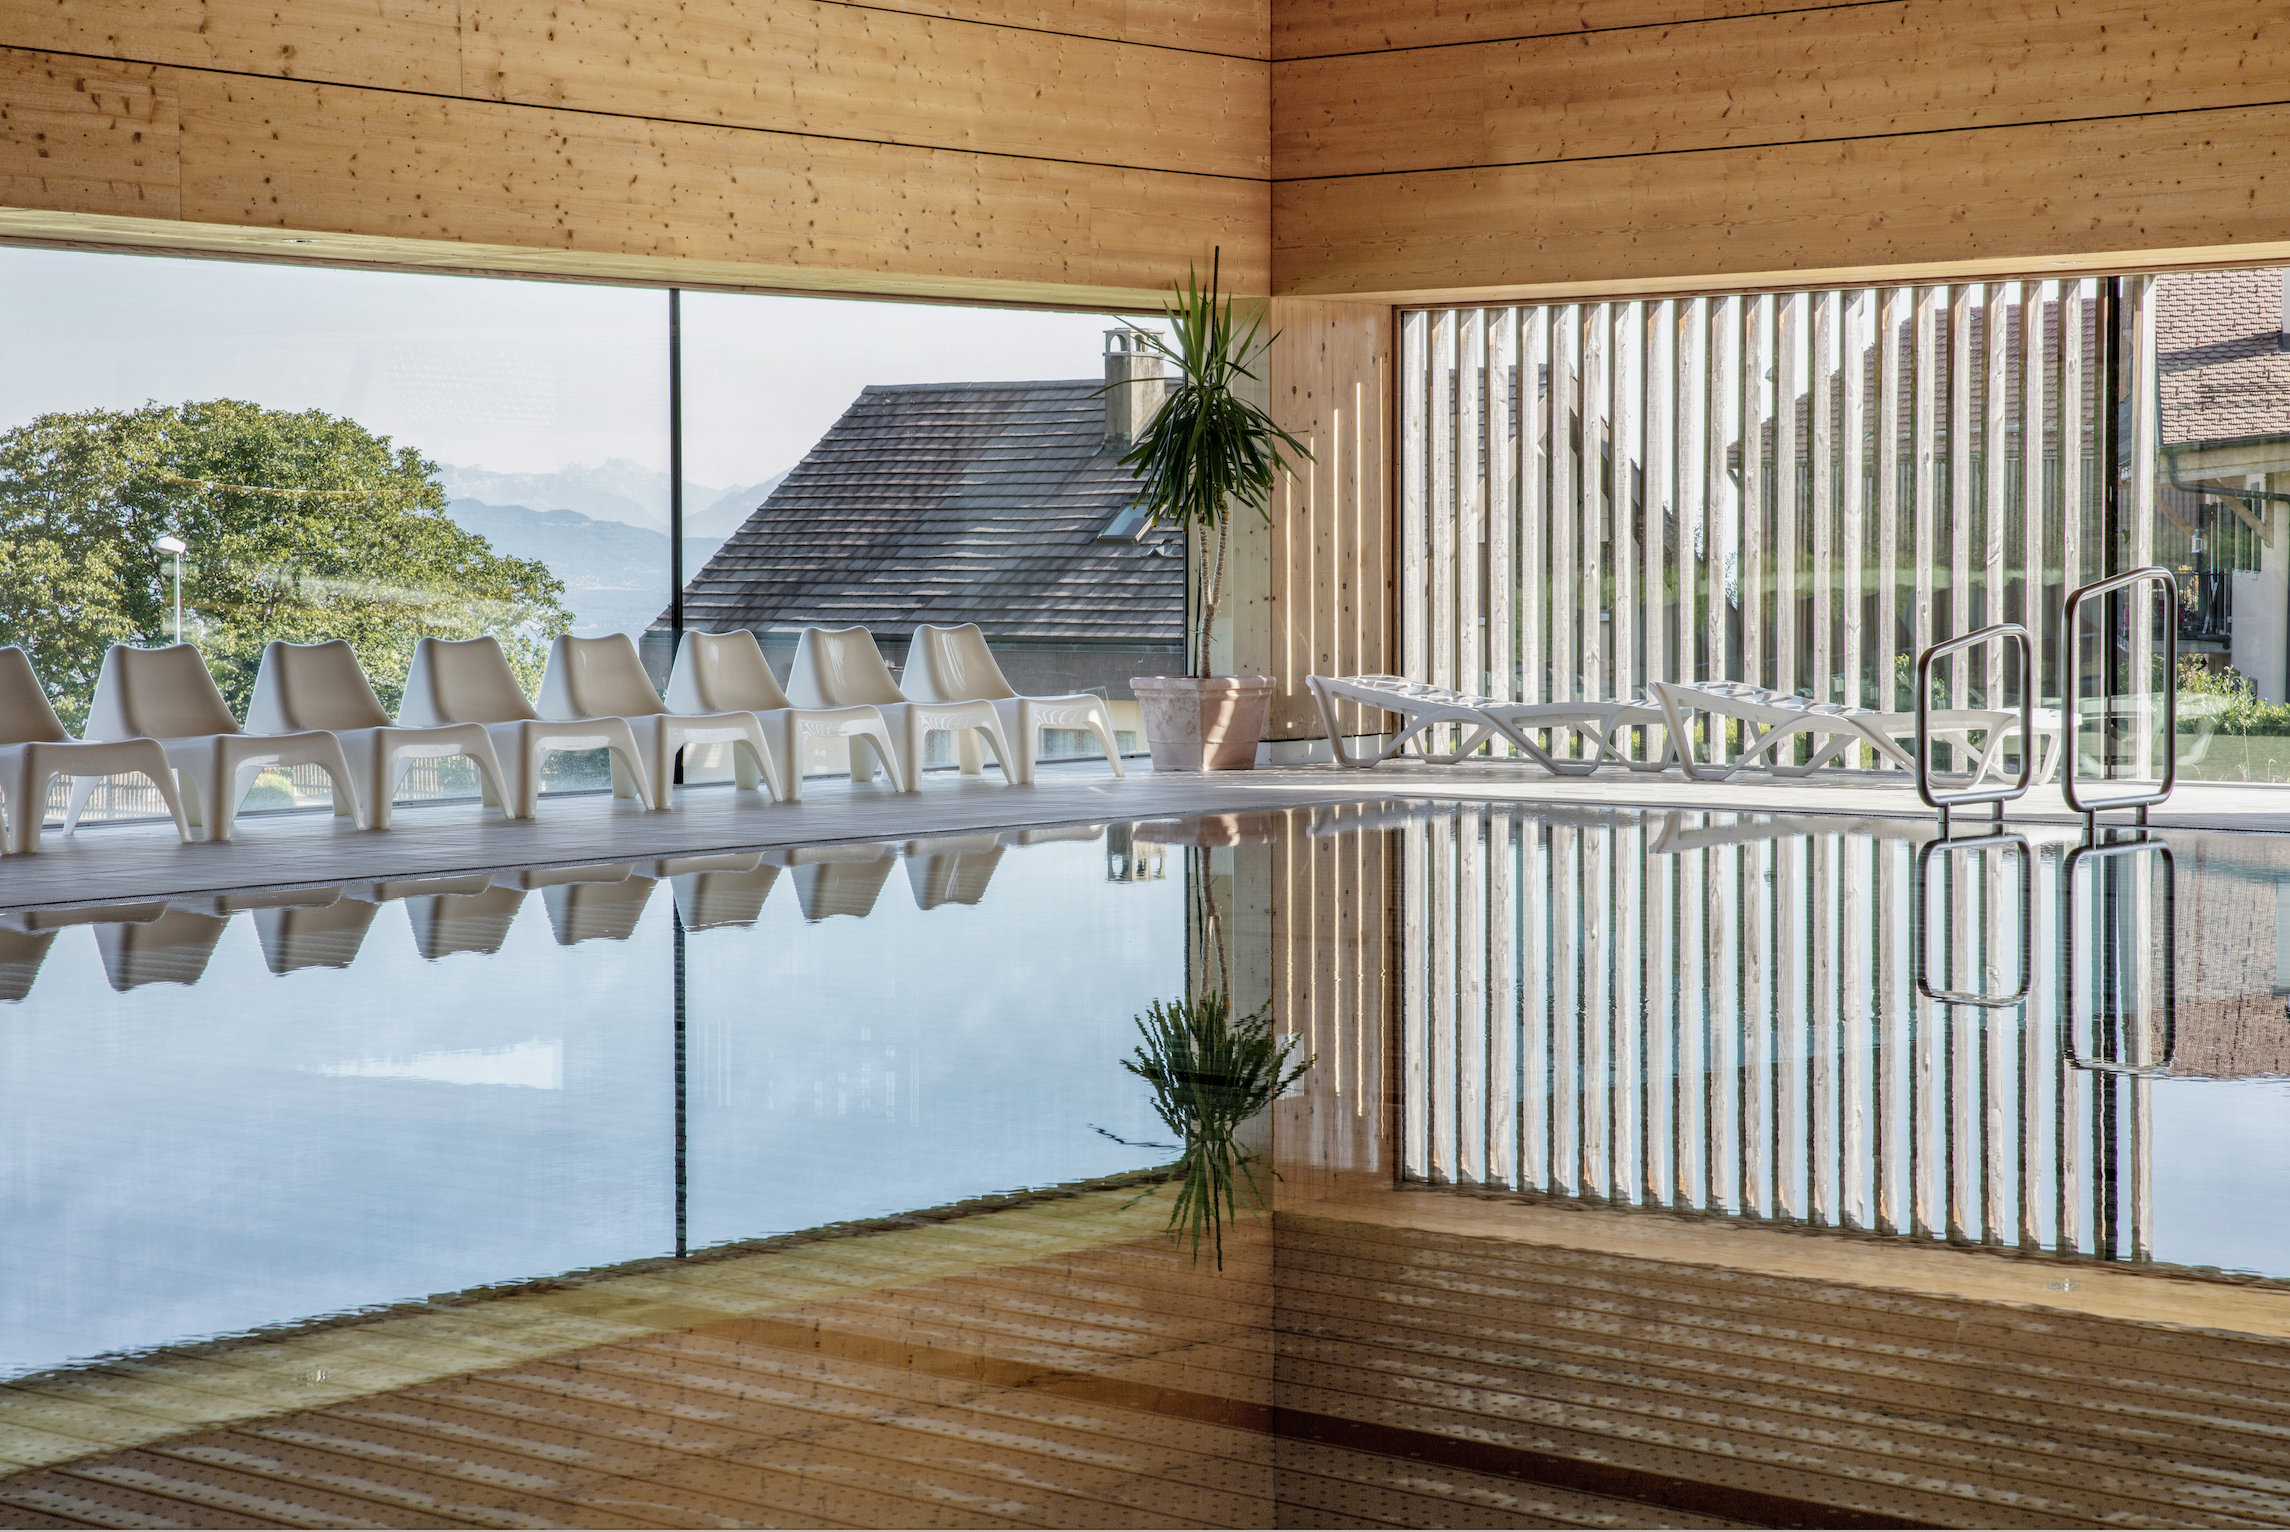 PISCINEDEBASSINS_KONKORD_PHOTOGRAPHY_9.png